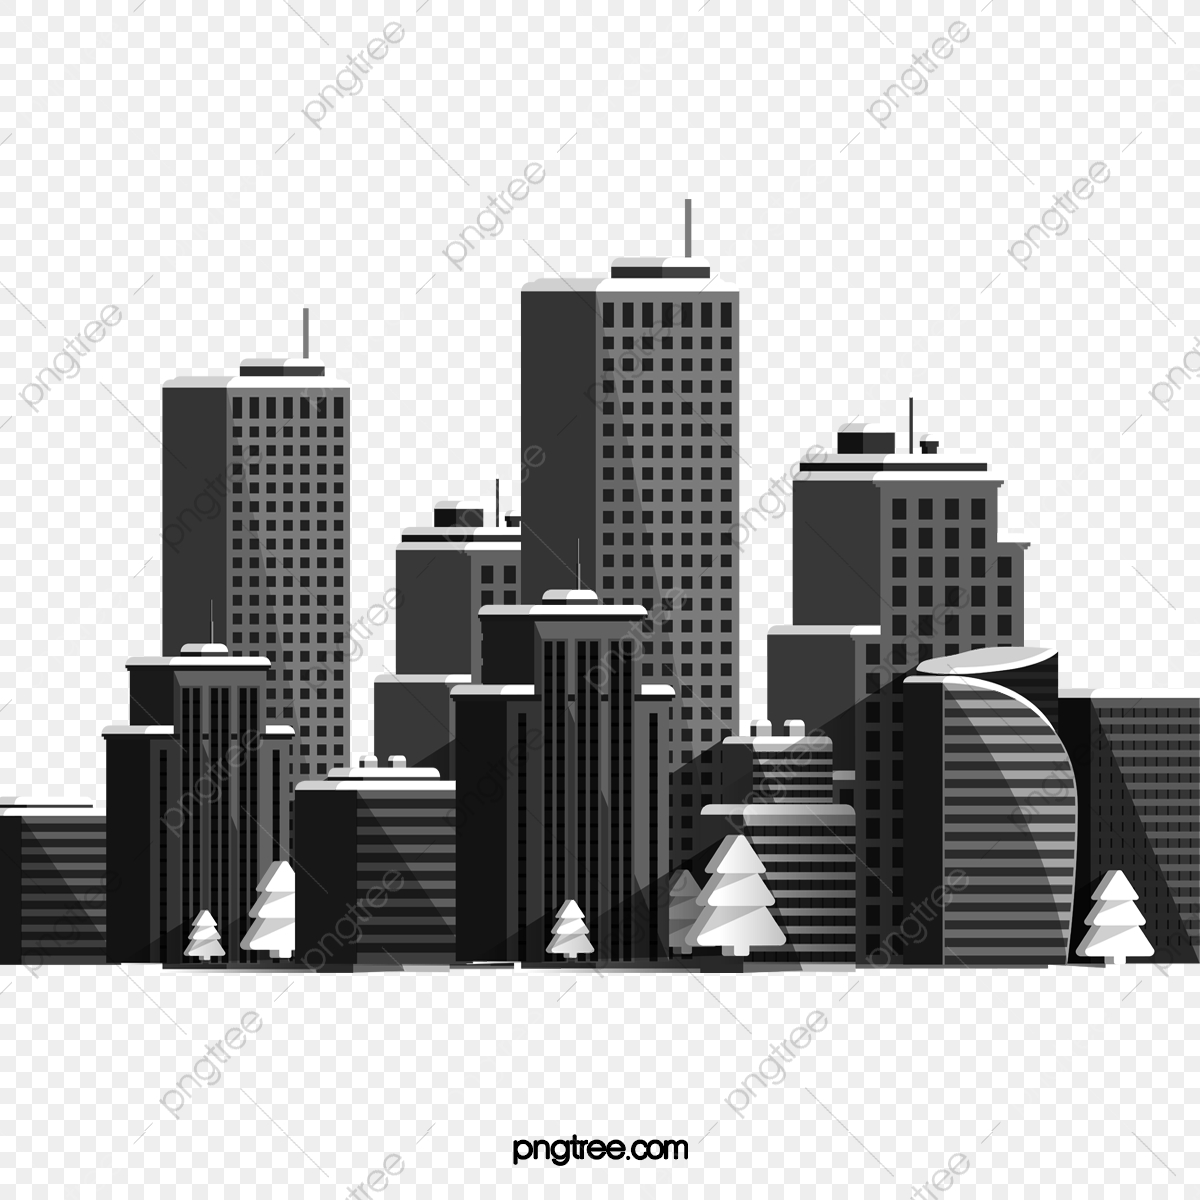 Building Silhouette, Building Vector, Silhouette Vector, City PNG.